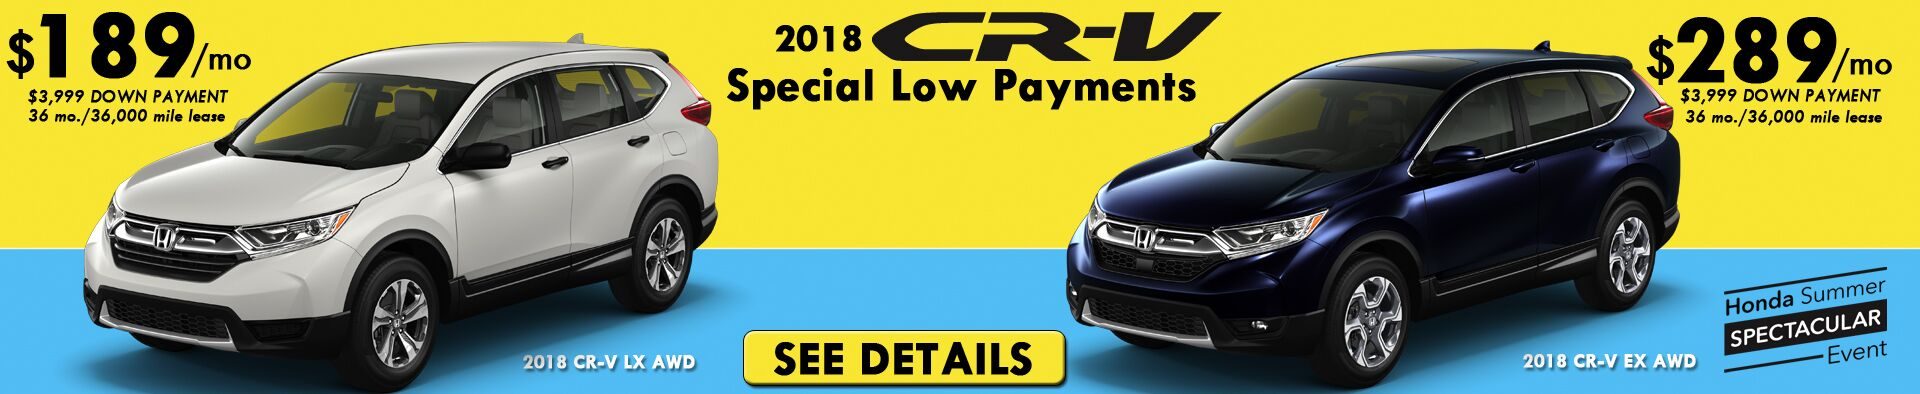 CR-V Special Lease Payments